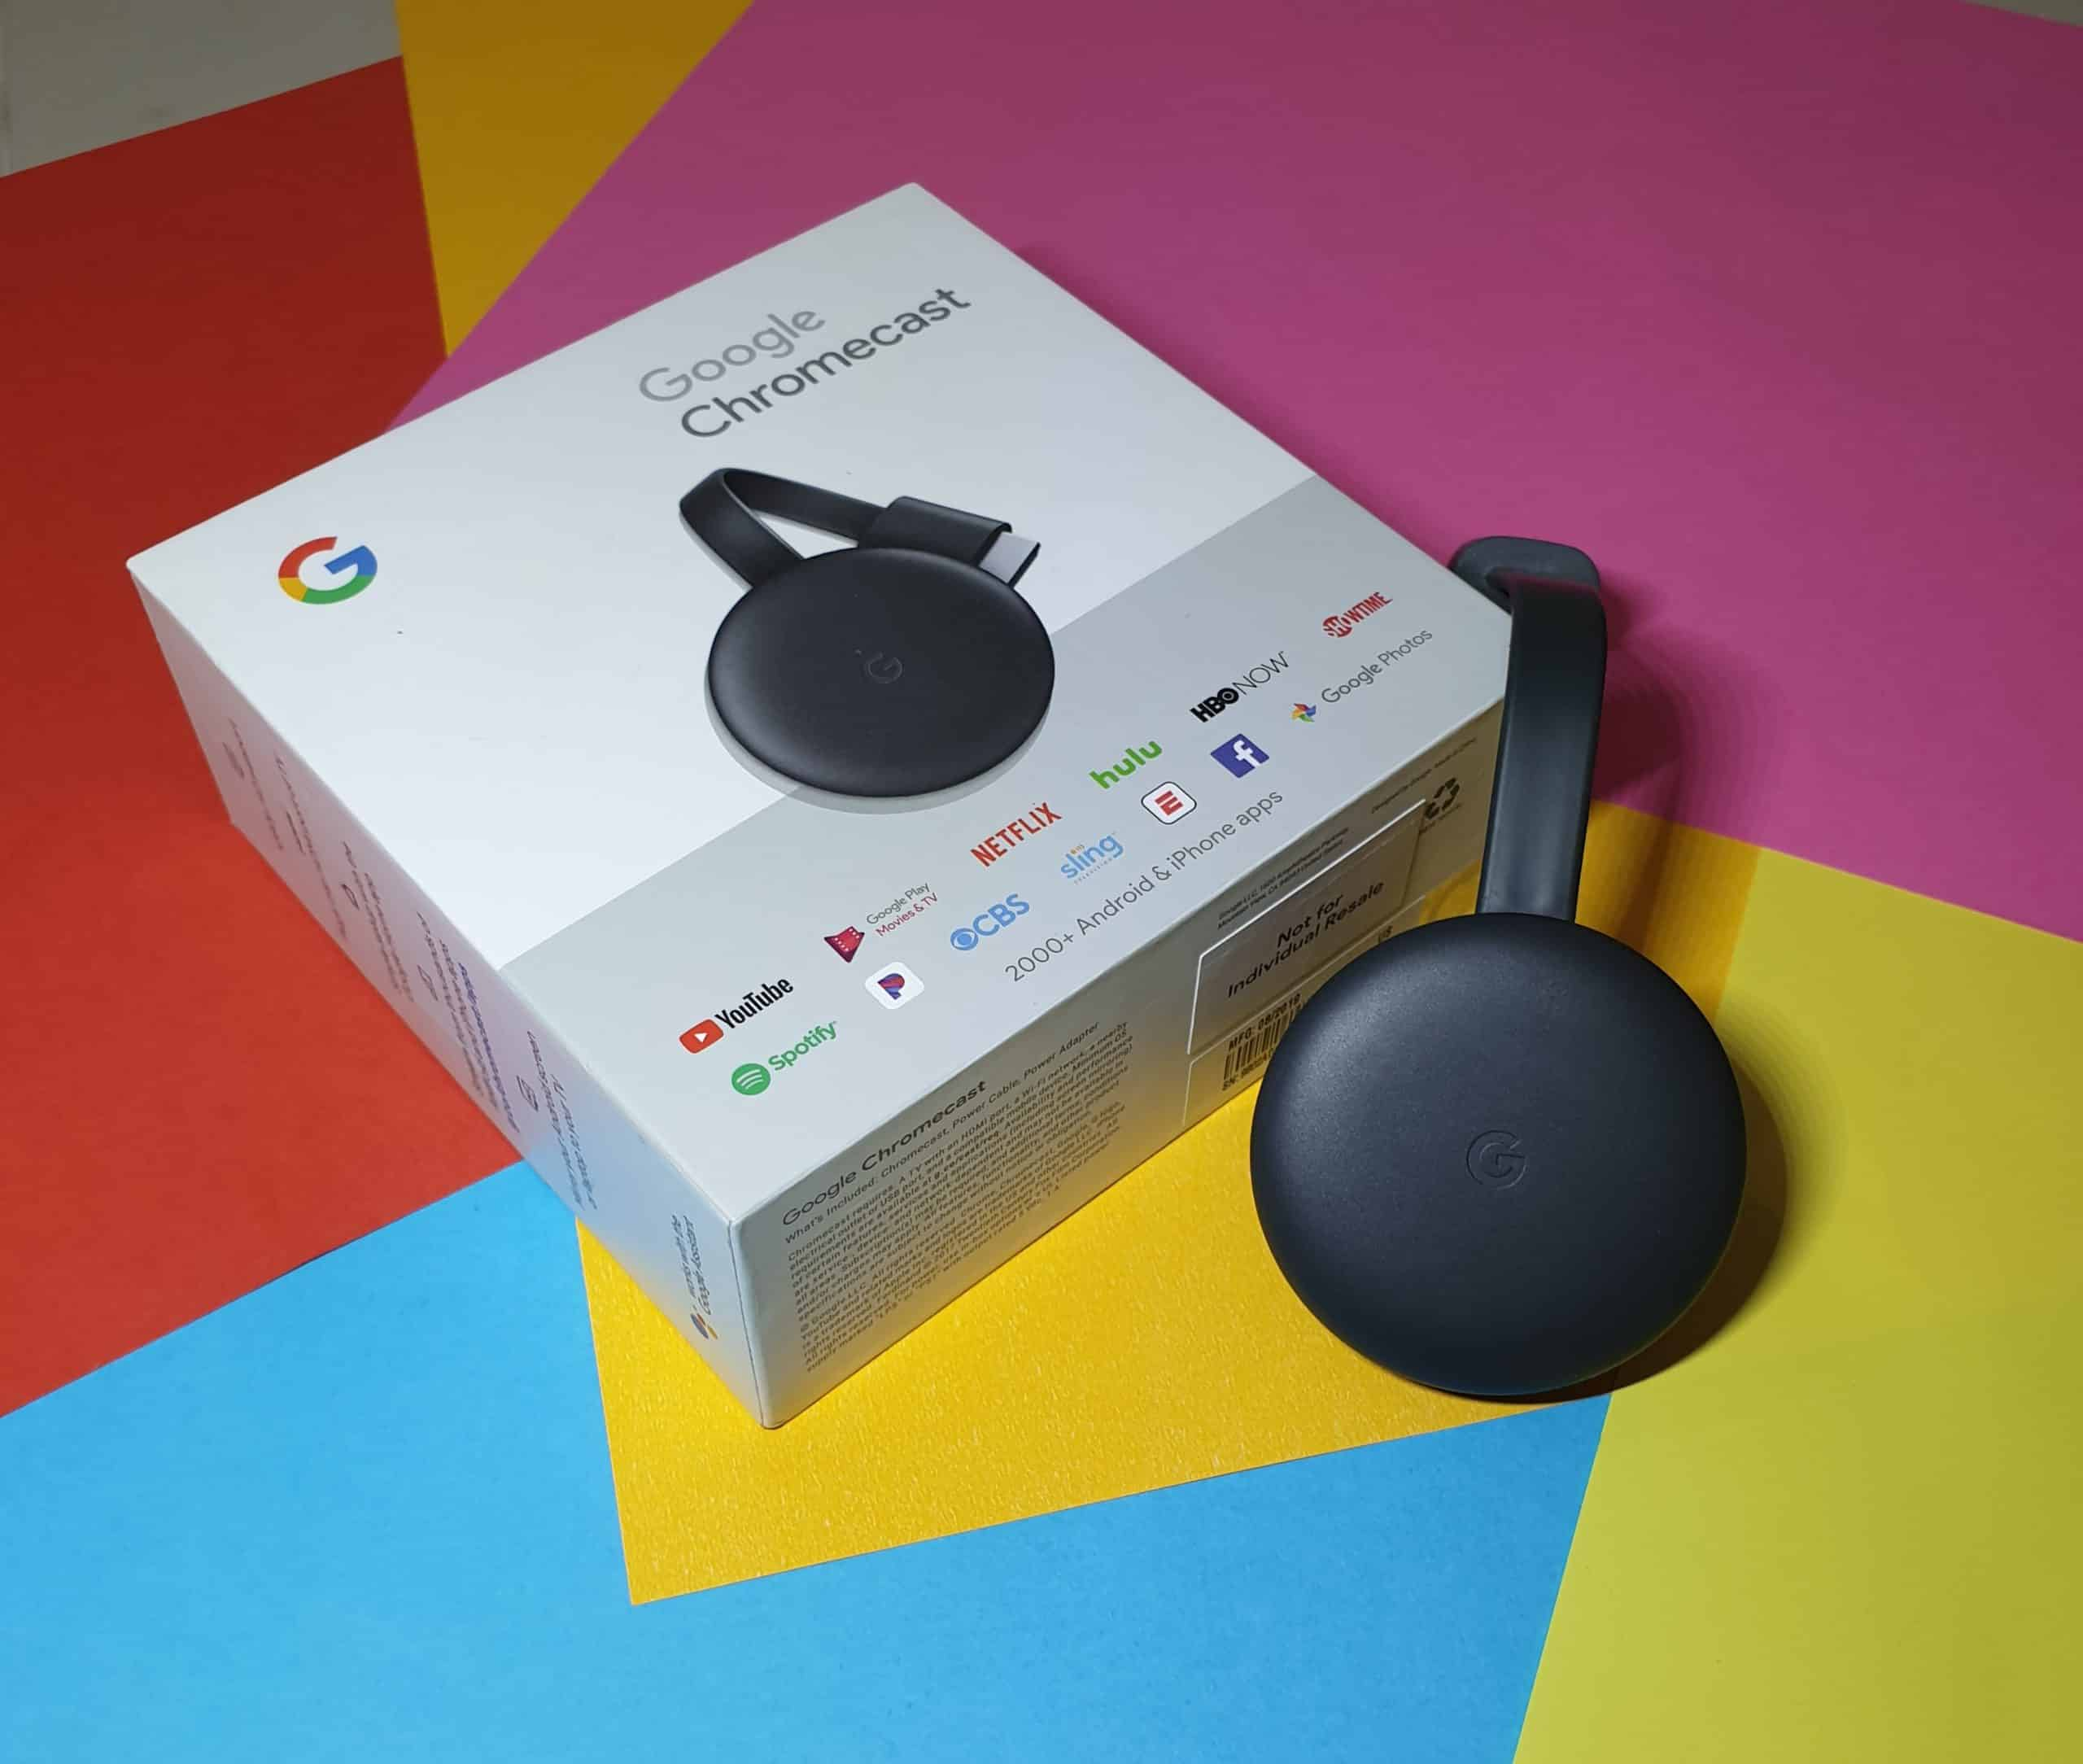 Google Chromecast Review: Is It Worth The Hype?